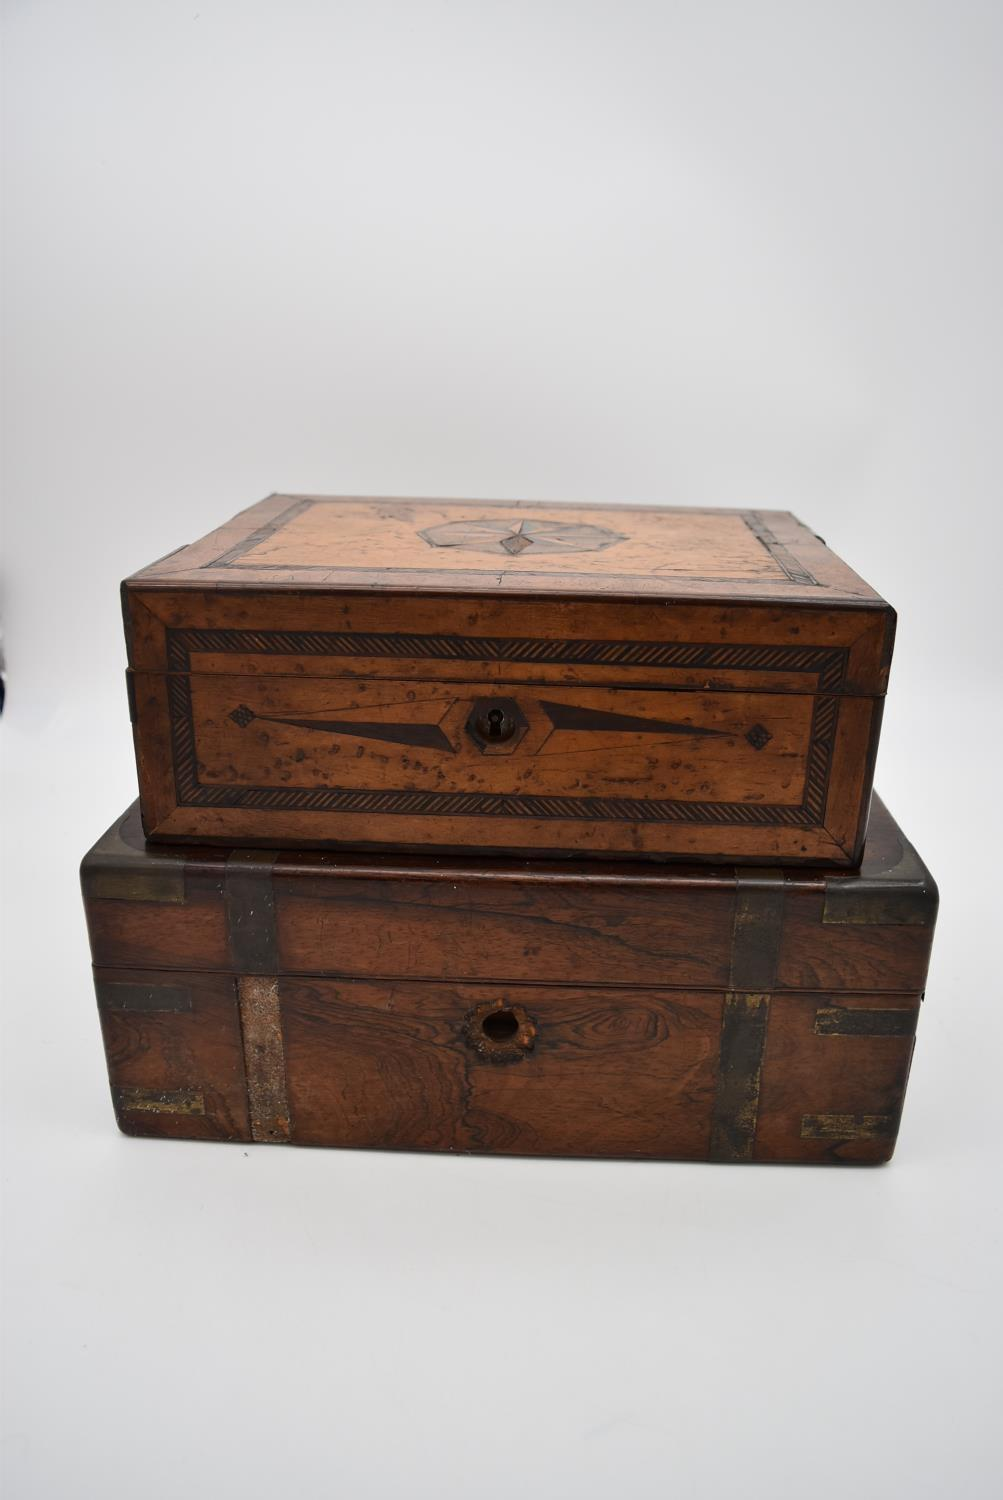 A 19th century yew, bird's eye maple, ebony and satinwood inlaid jewellery box and a 19th century